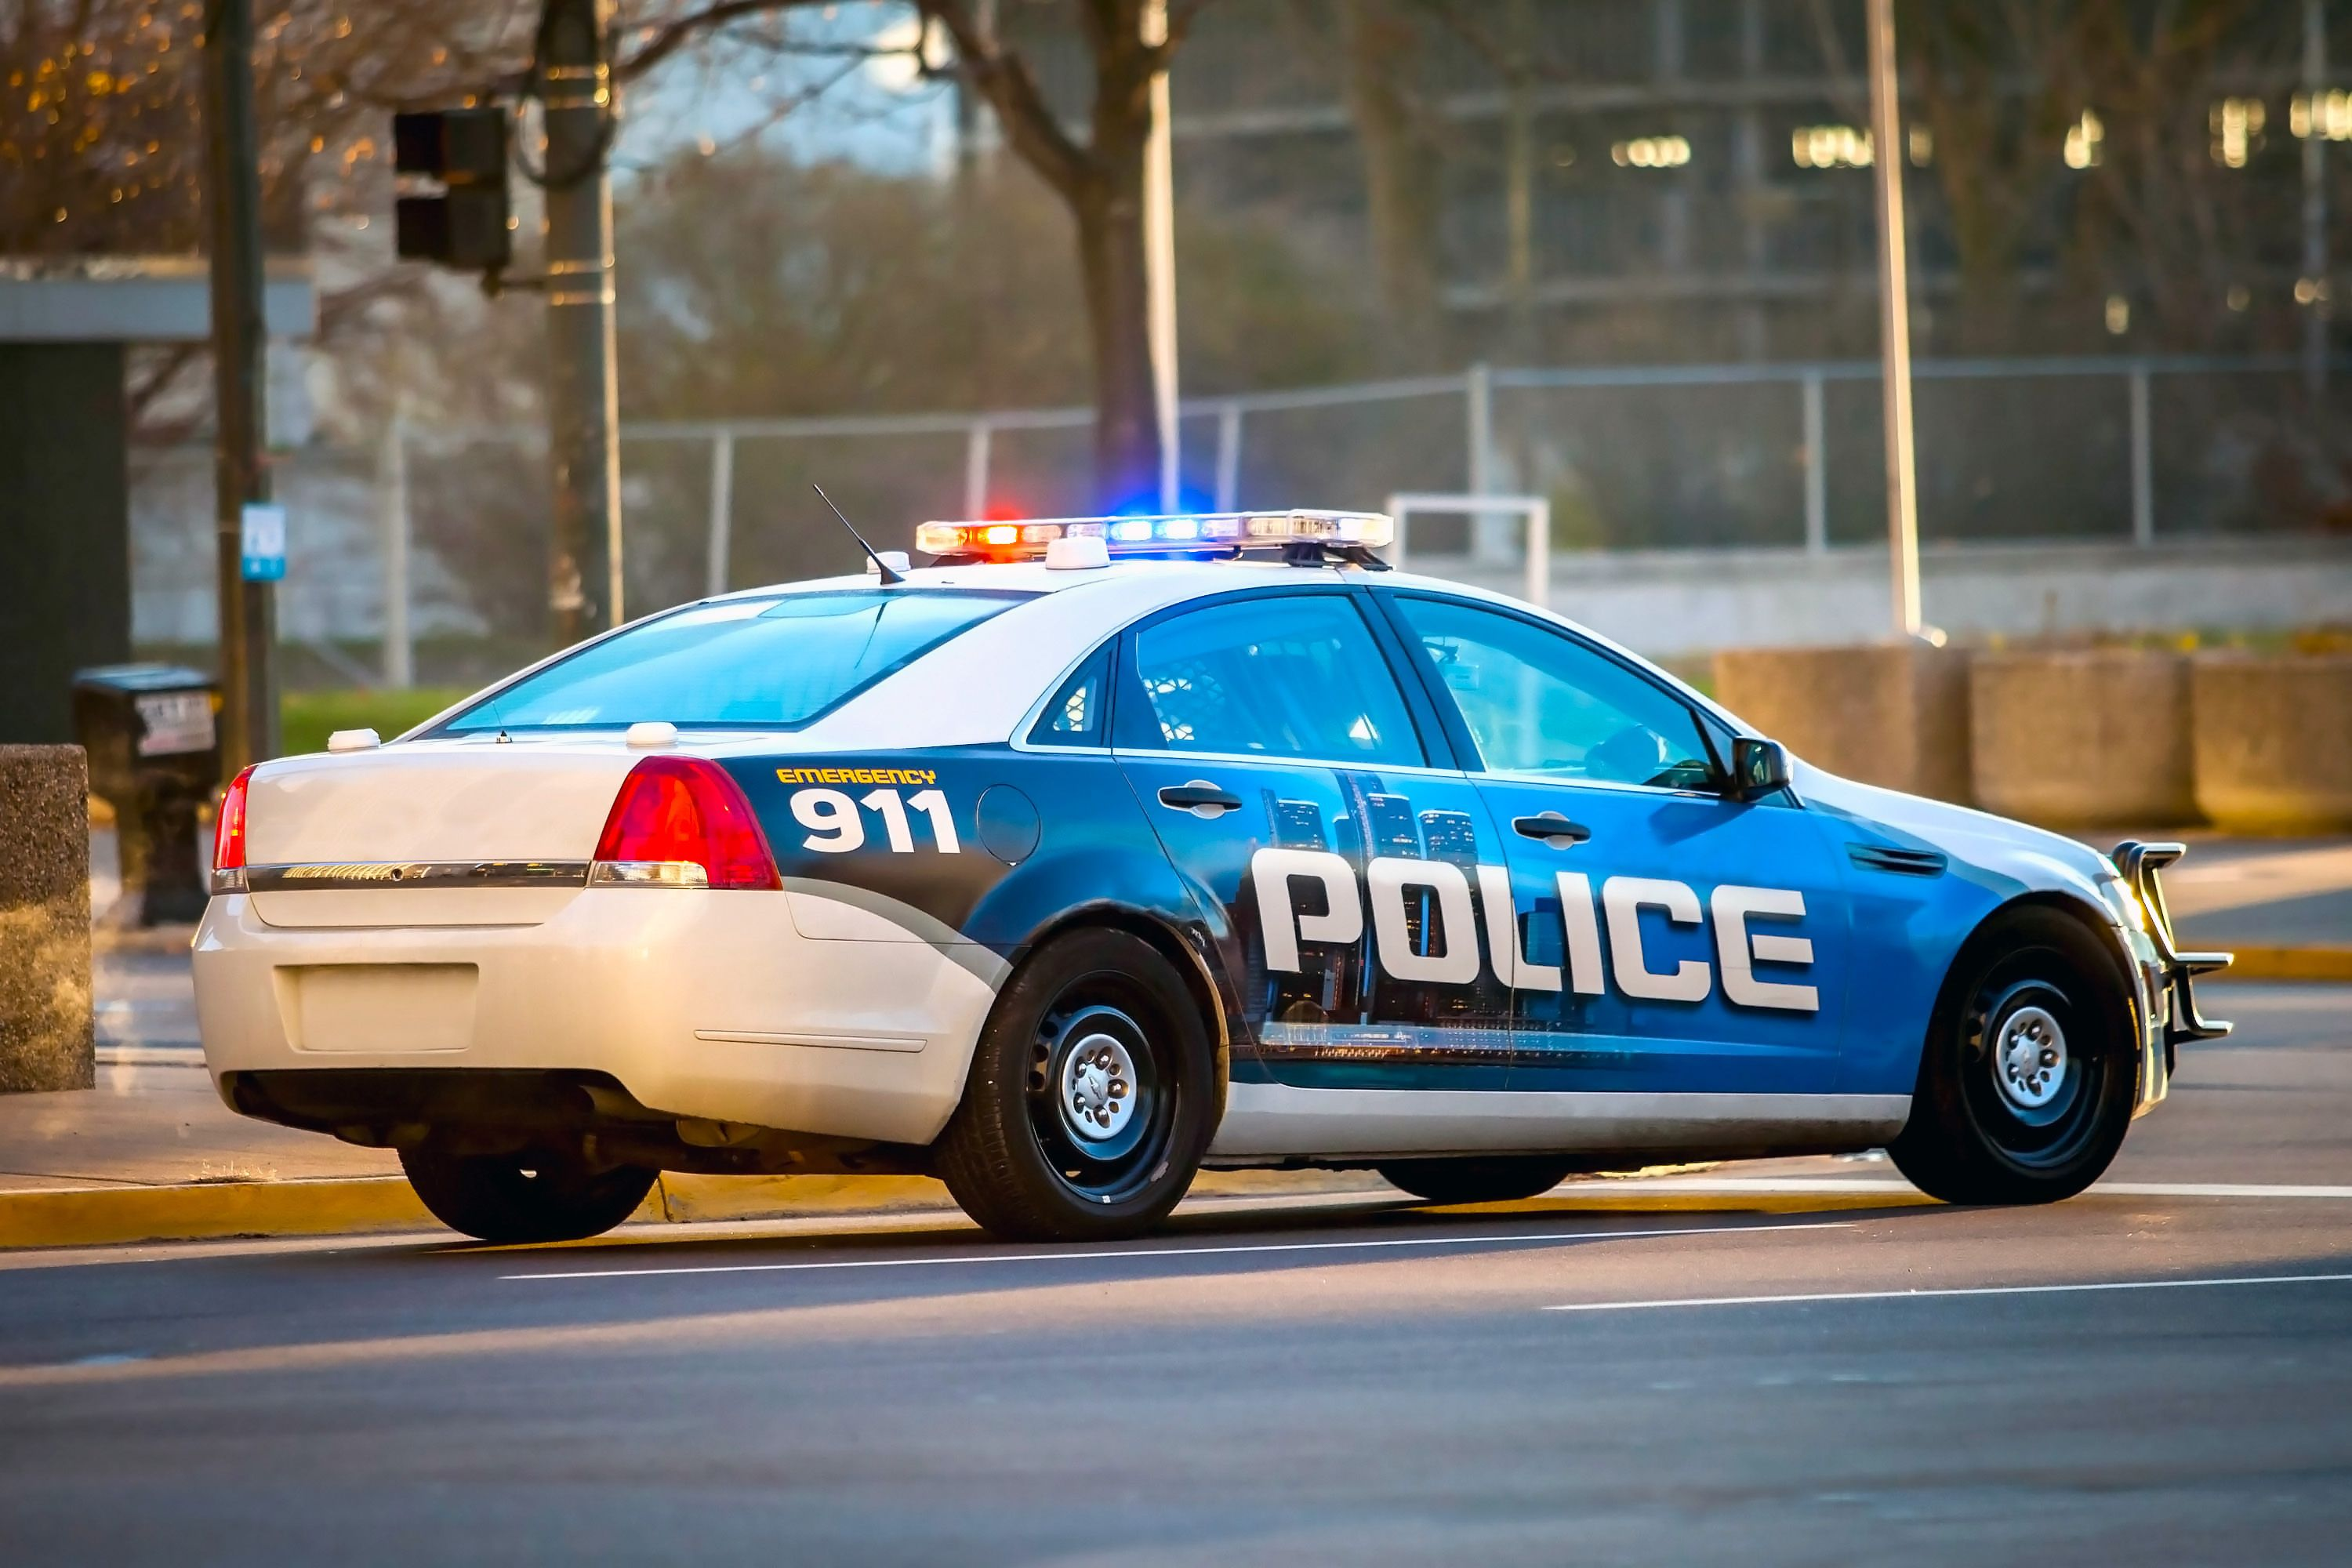 A police patrol driving through a street.   Source: Shutterstock